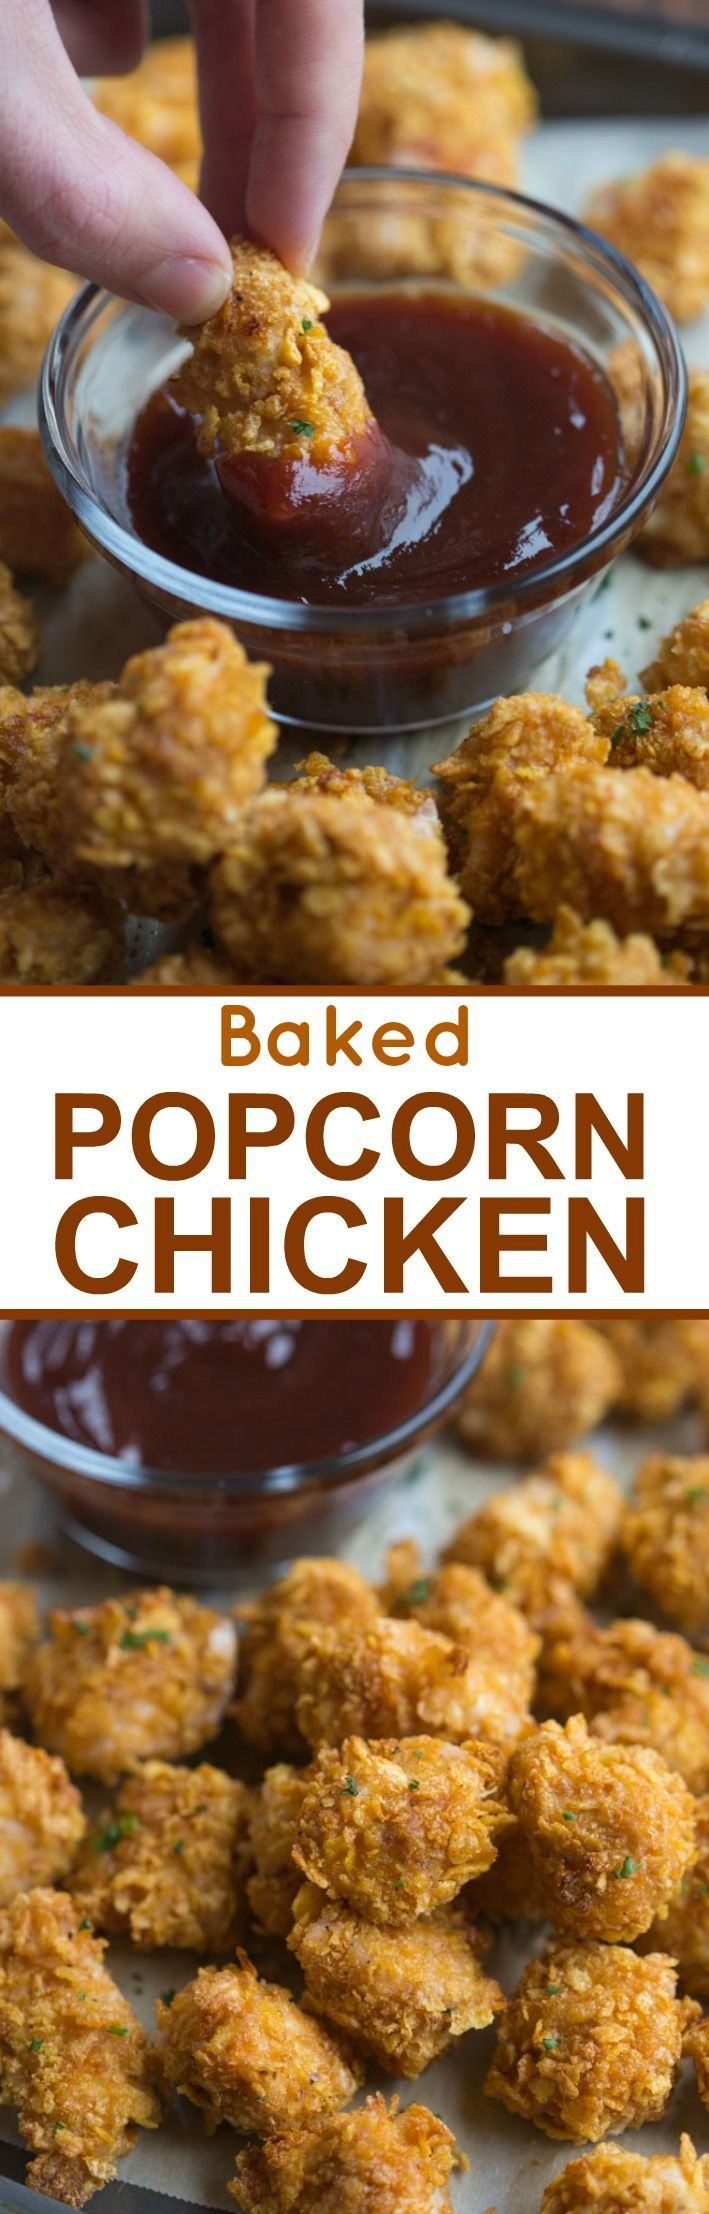 Crispy on the outside, juicy on the inside, Baked Popcorn Chicken, served with your favorite dipping sauce!   Tastes Better From Scratch